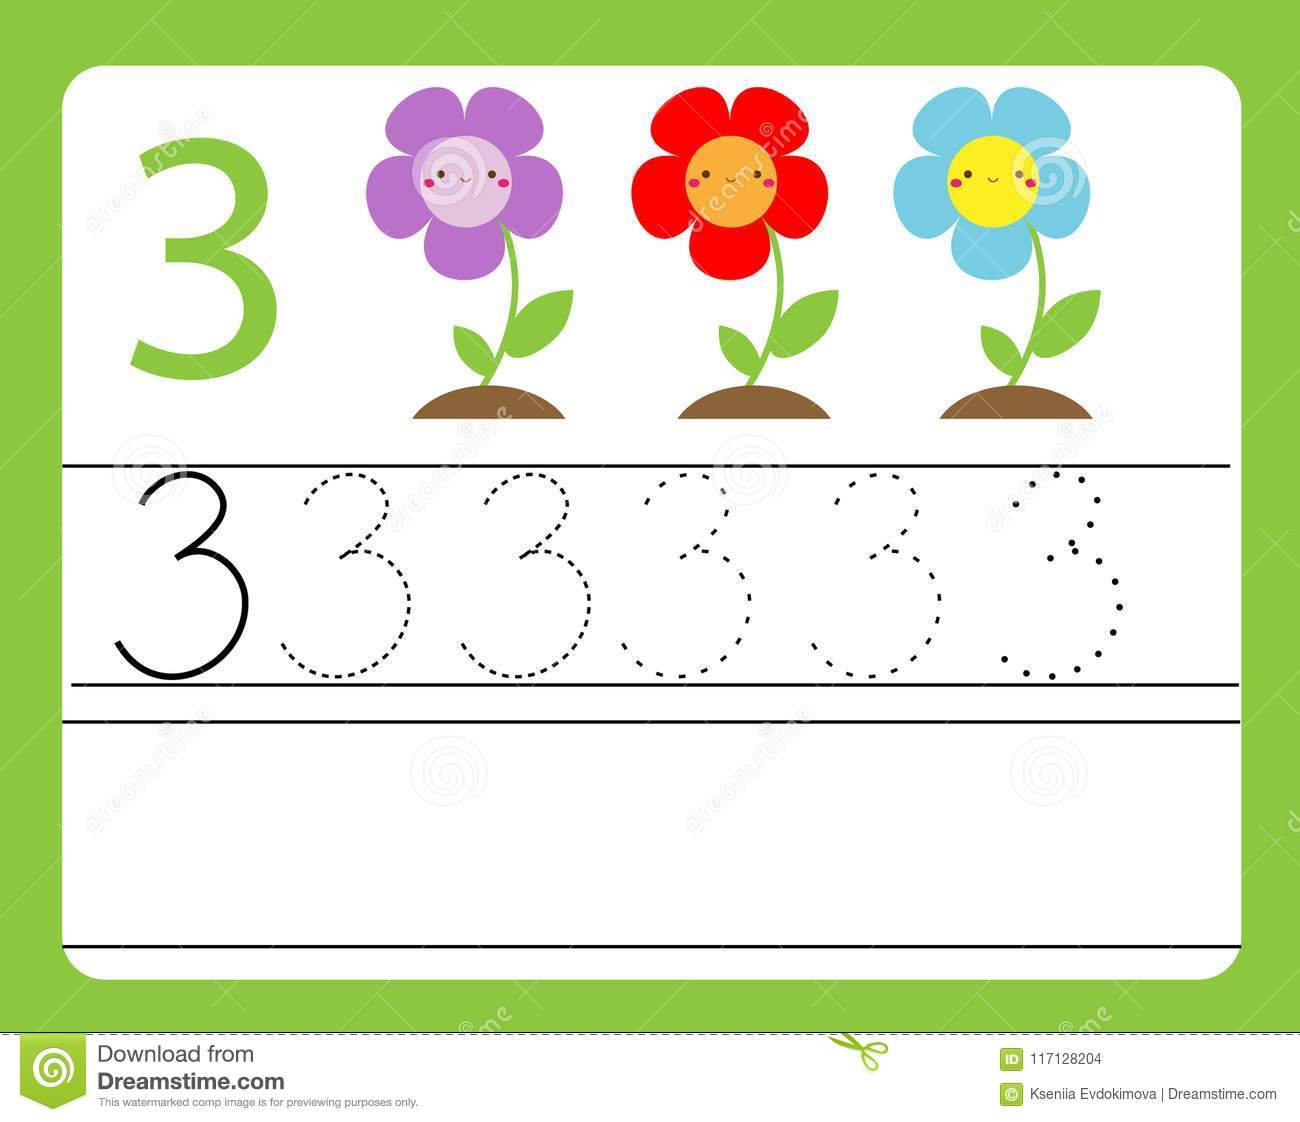 Handwriting Practice Learning Numbers With Cute Characters Number Three Educational Printable